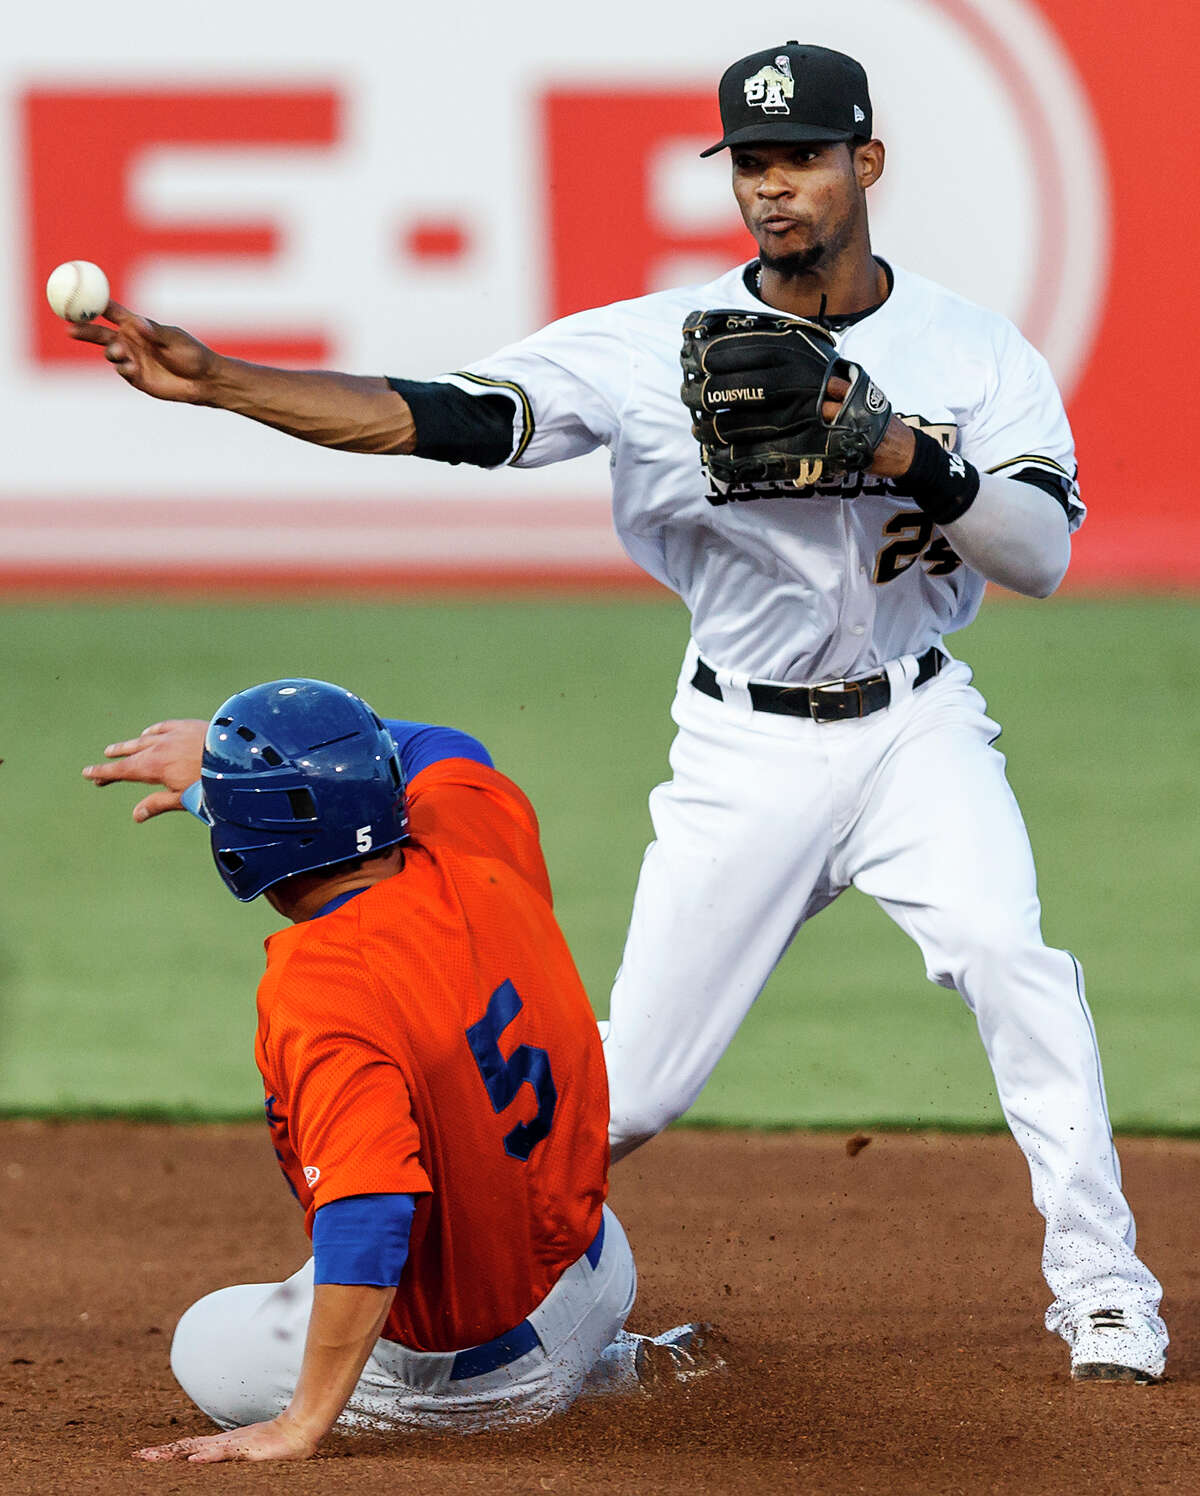 Jeudy Valdez of the Missions (right) throws to first base to complete a double play after forcing out Midland's Chad Oberacker at second during the fifth inning of their game with the Midland Rockhounds at Wolff Stadium on Thursday, July 18, 2013. Midland beat the Missions 3-1. MARVIN PFEIFFER/ mpfeiffer@express-news.net